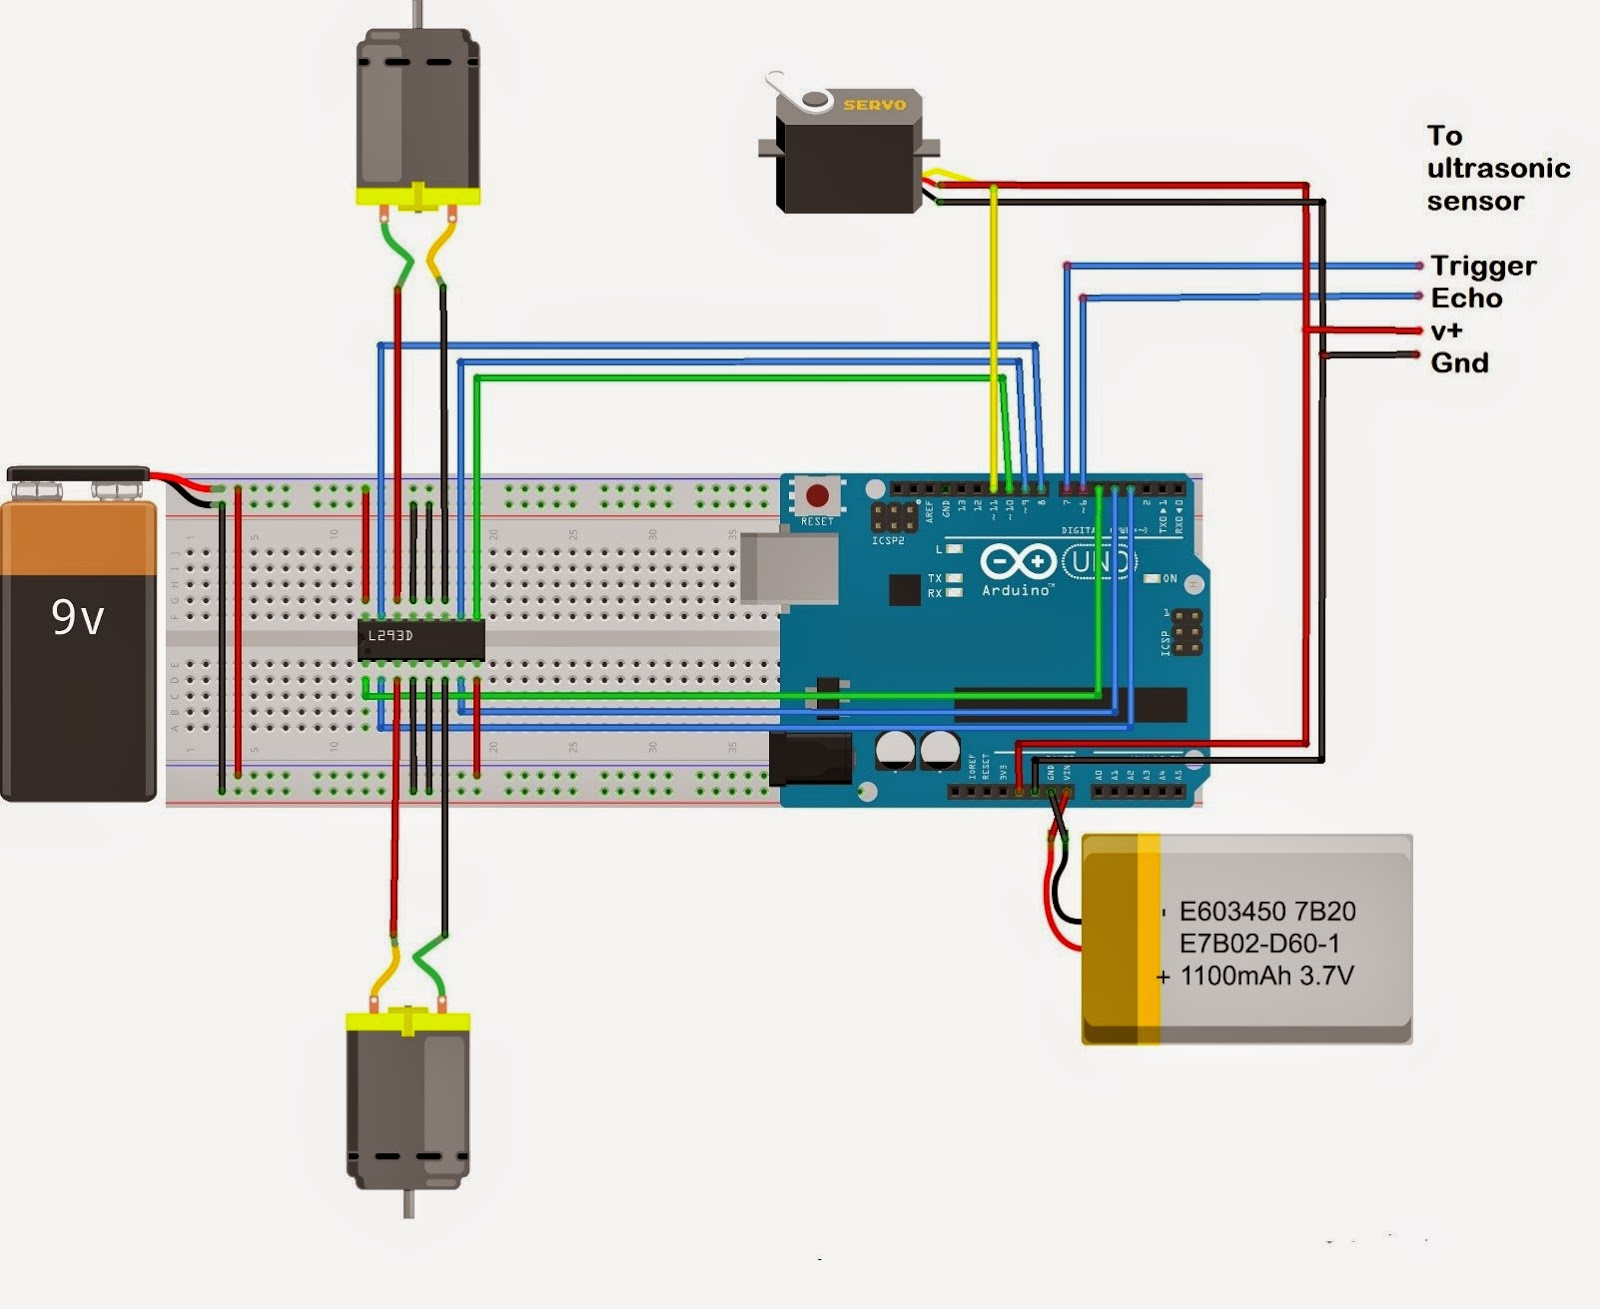 pin 7 arduino vw golf mk4 headlight switch wiring diagram control a dc motor with and l293d chip